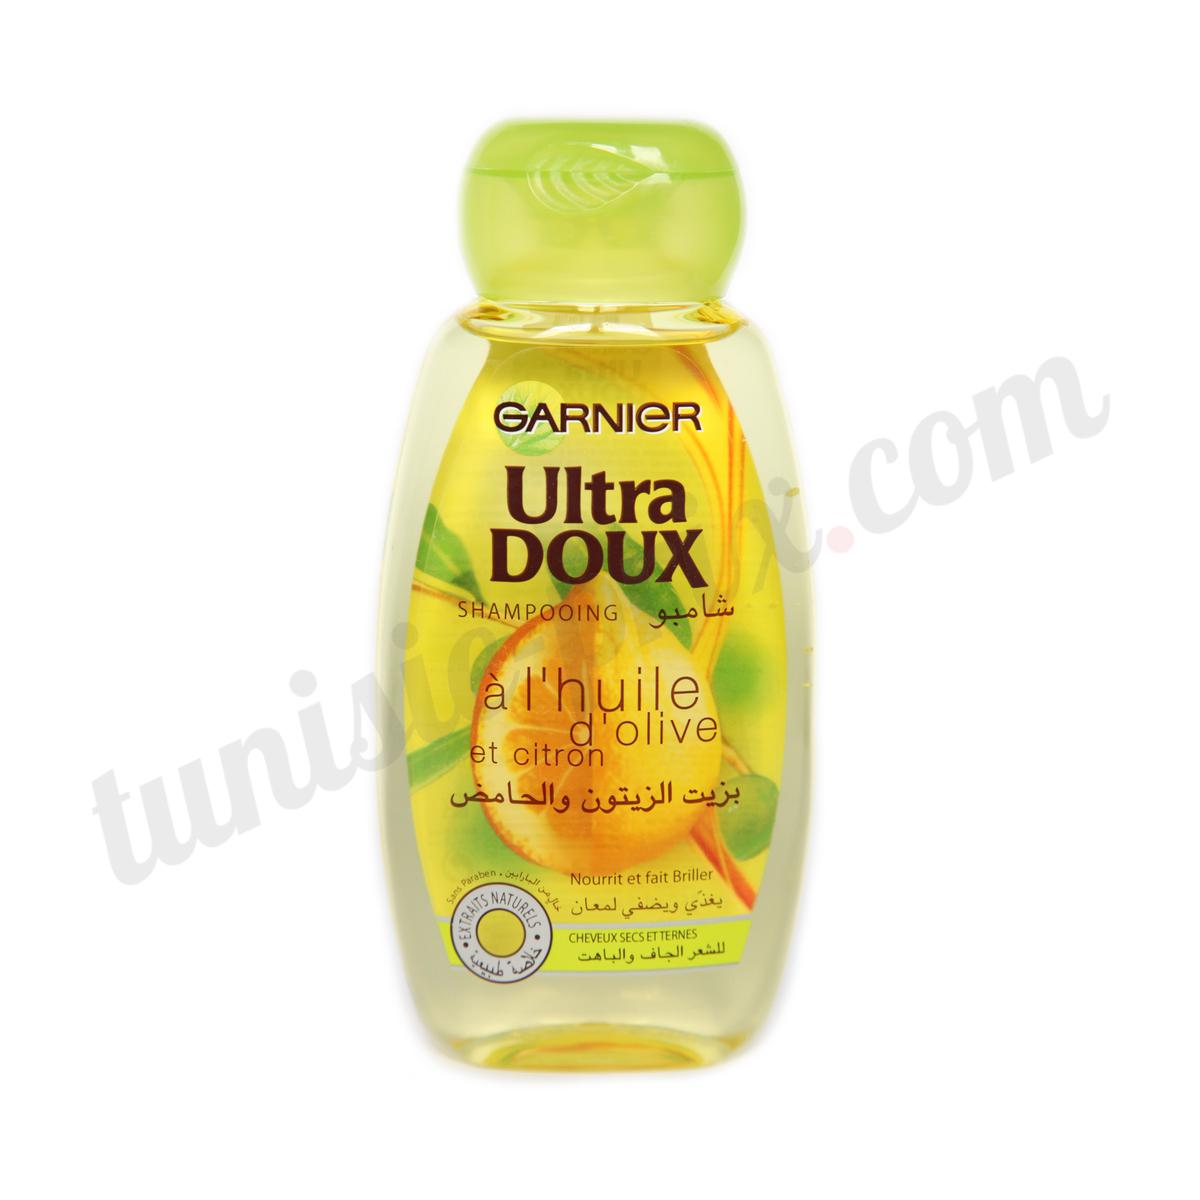 shampooing ultra doux garnier l 39 huile d 39 olive et citron tunisie. Black Bedroom Furniture Sets. Home Design Ideas